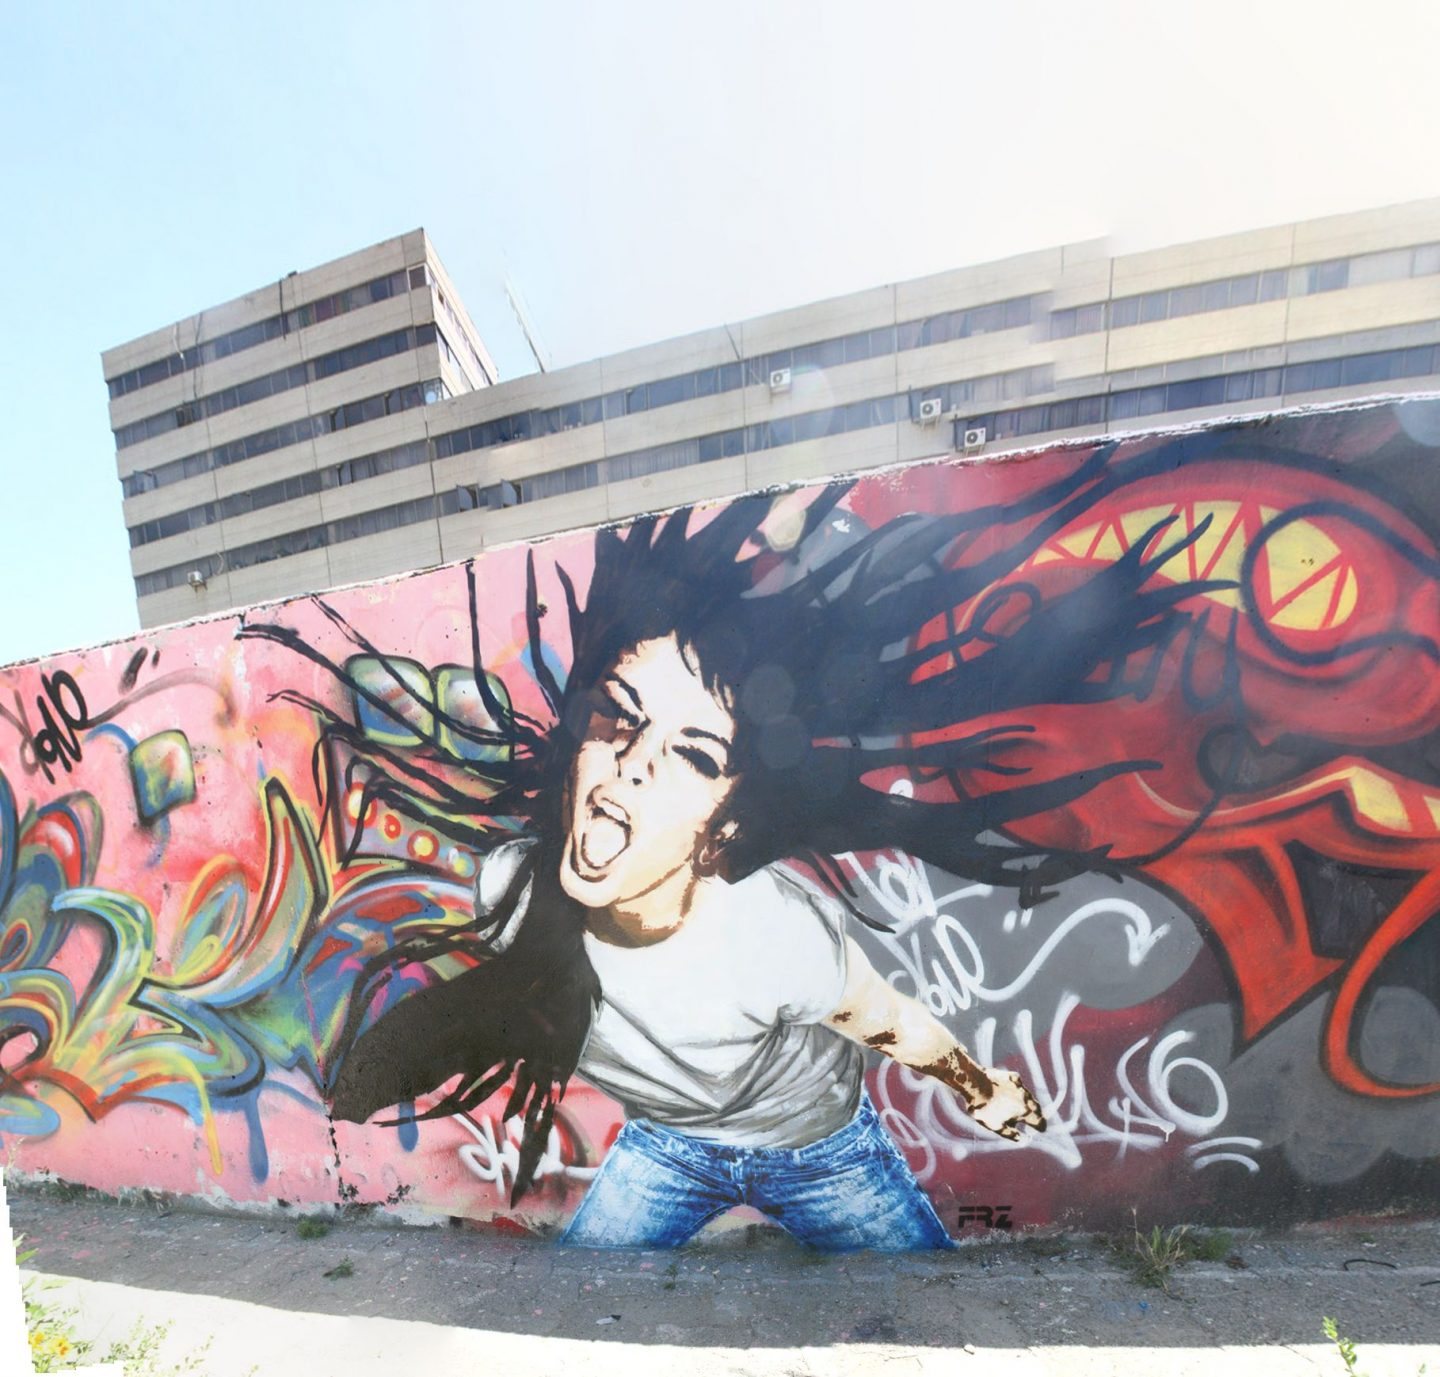 FRZ Scream Mural Iran